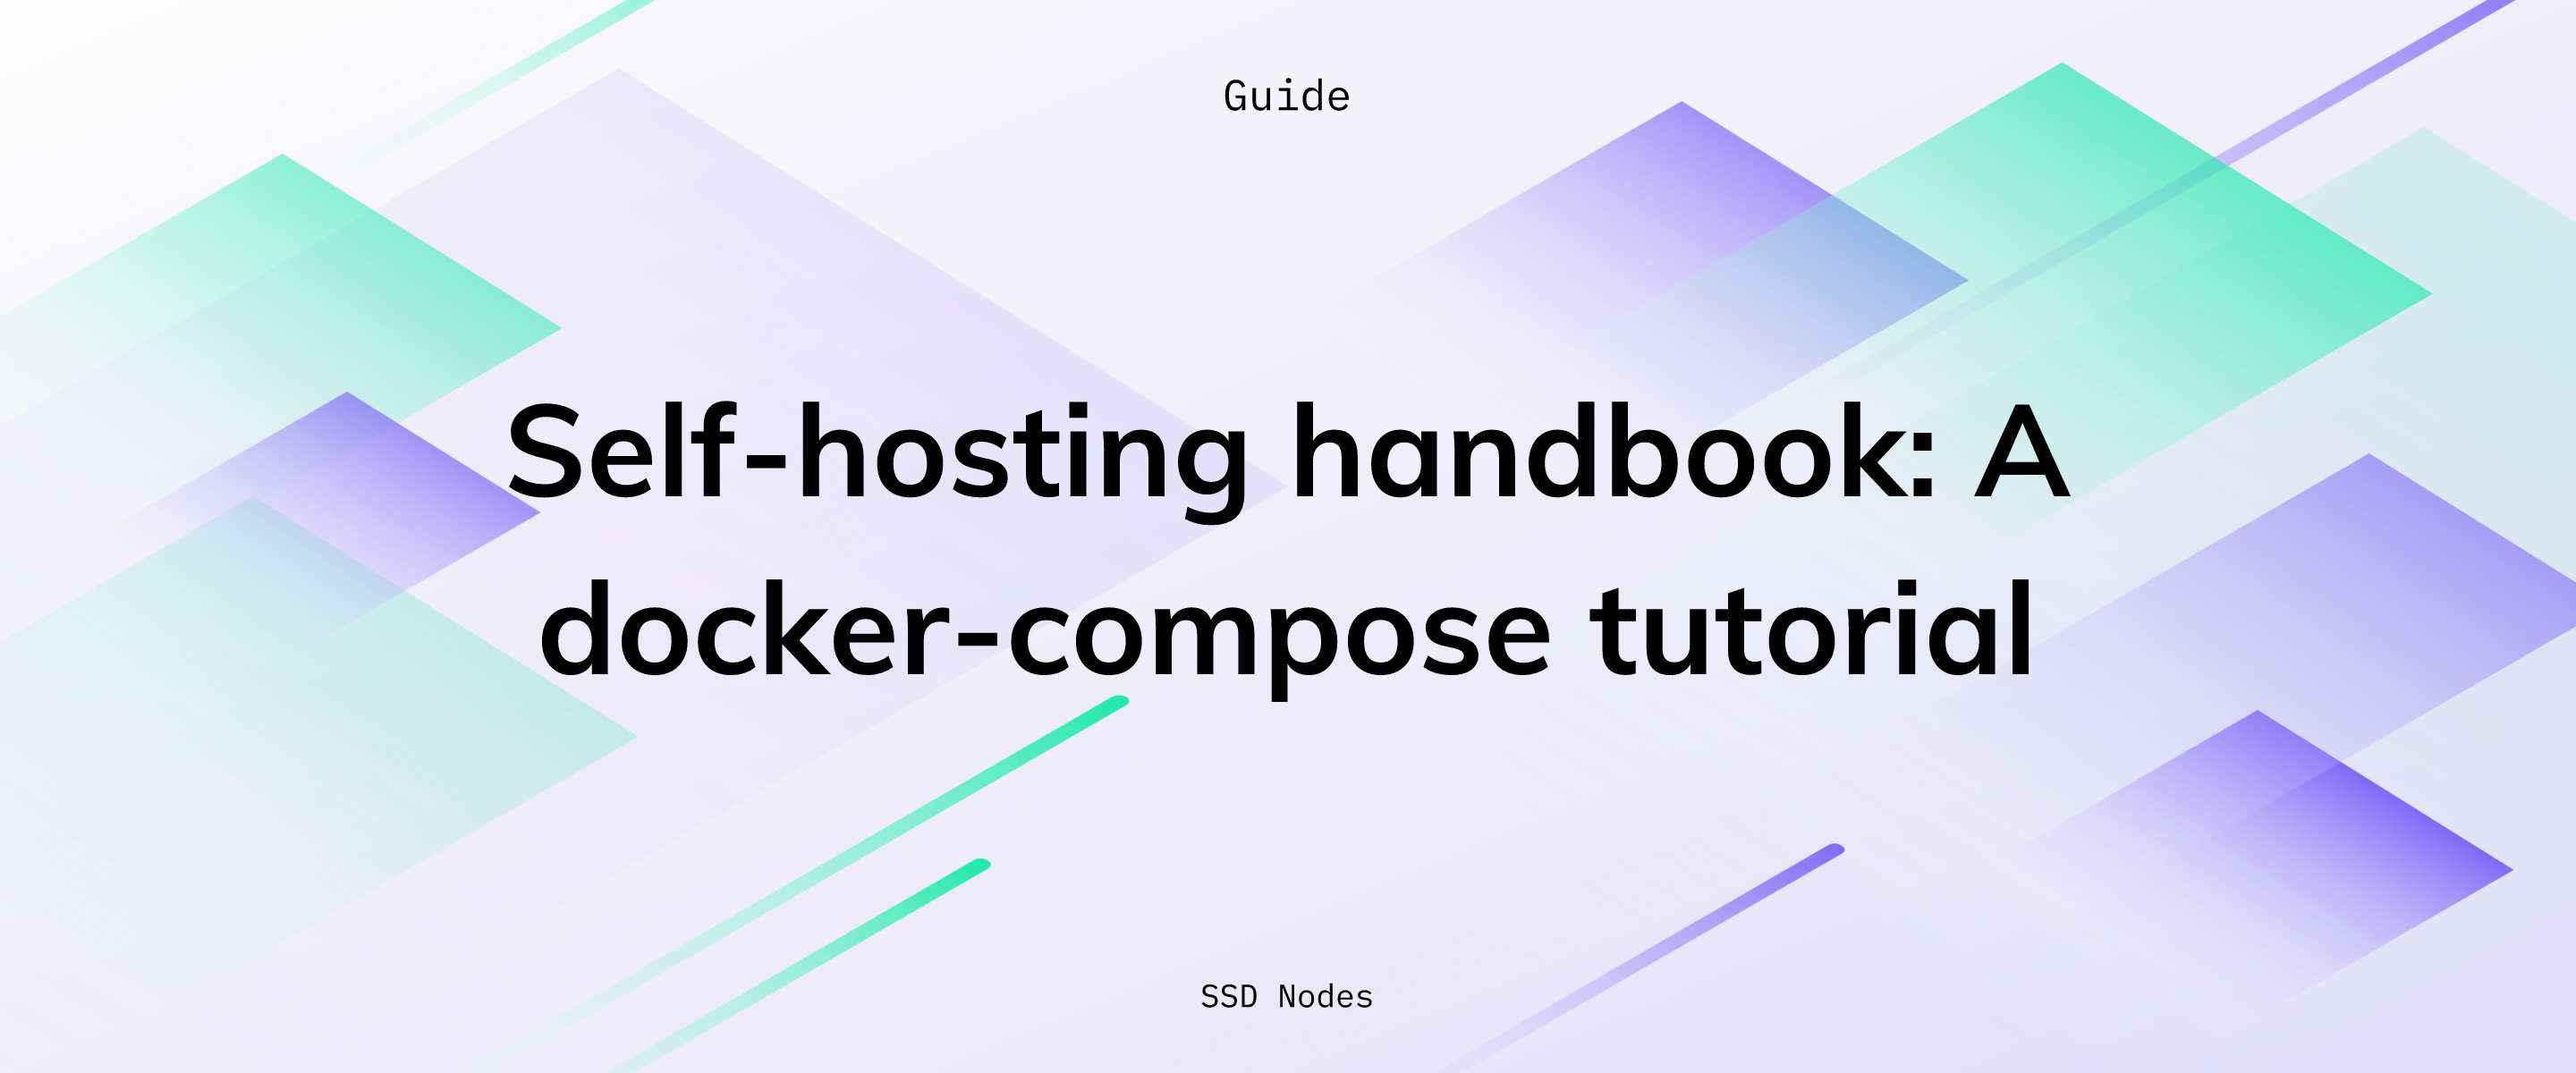 Self-hosting handbook: docker-compose tutorial